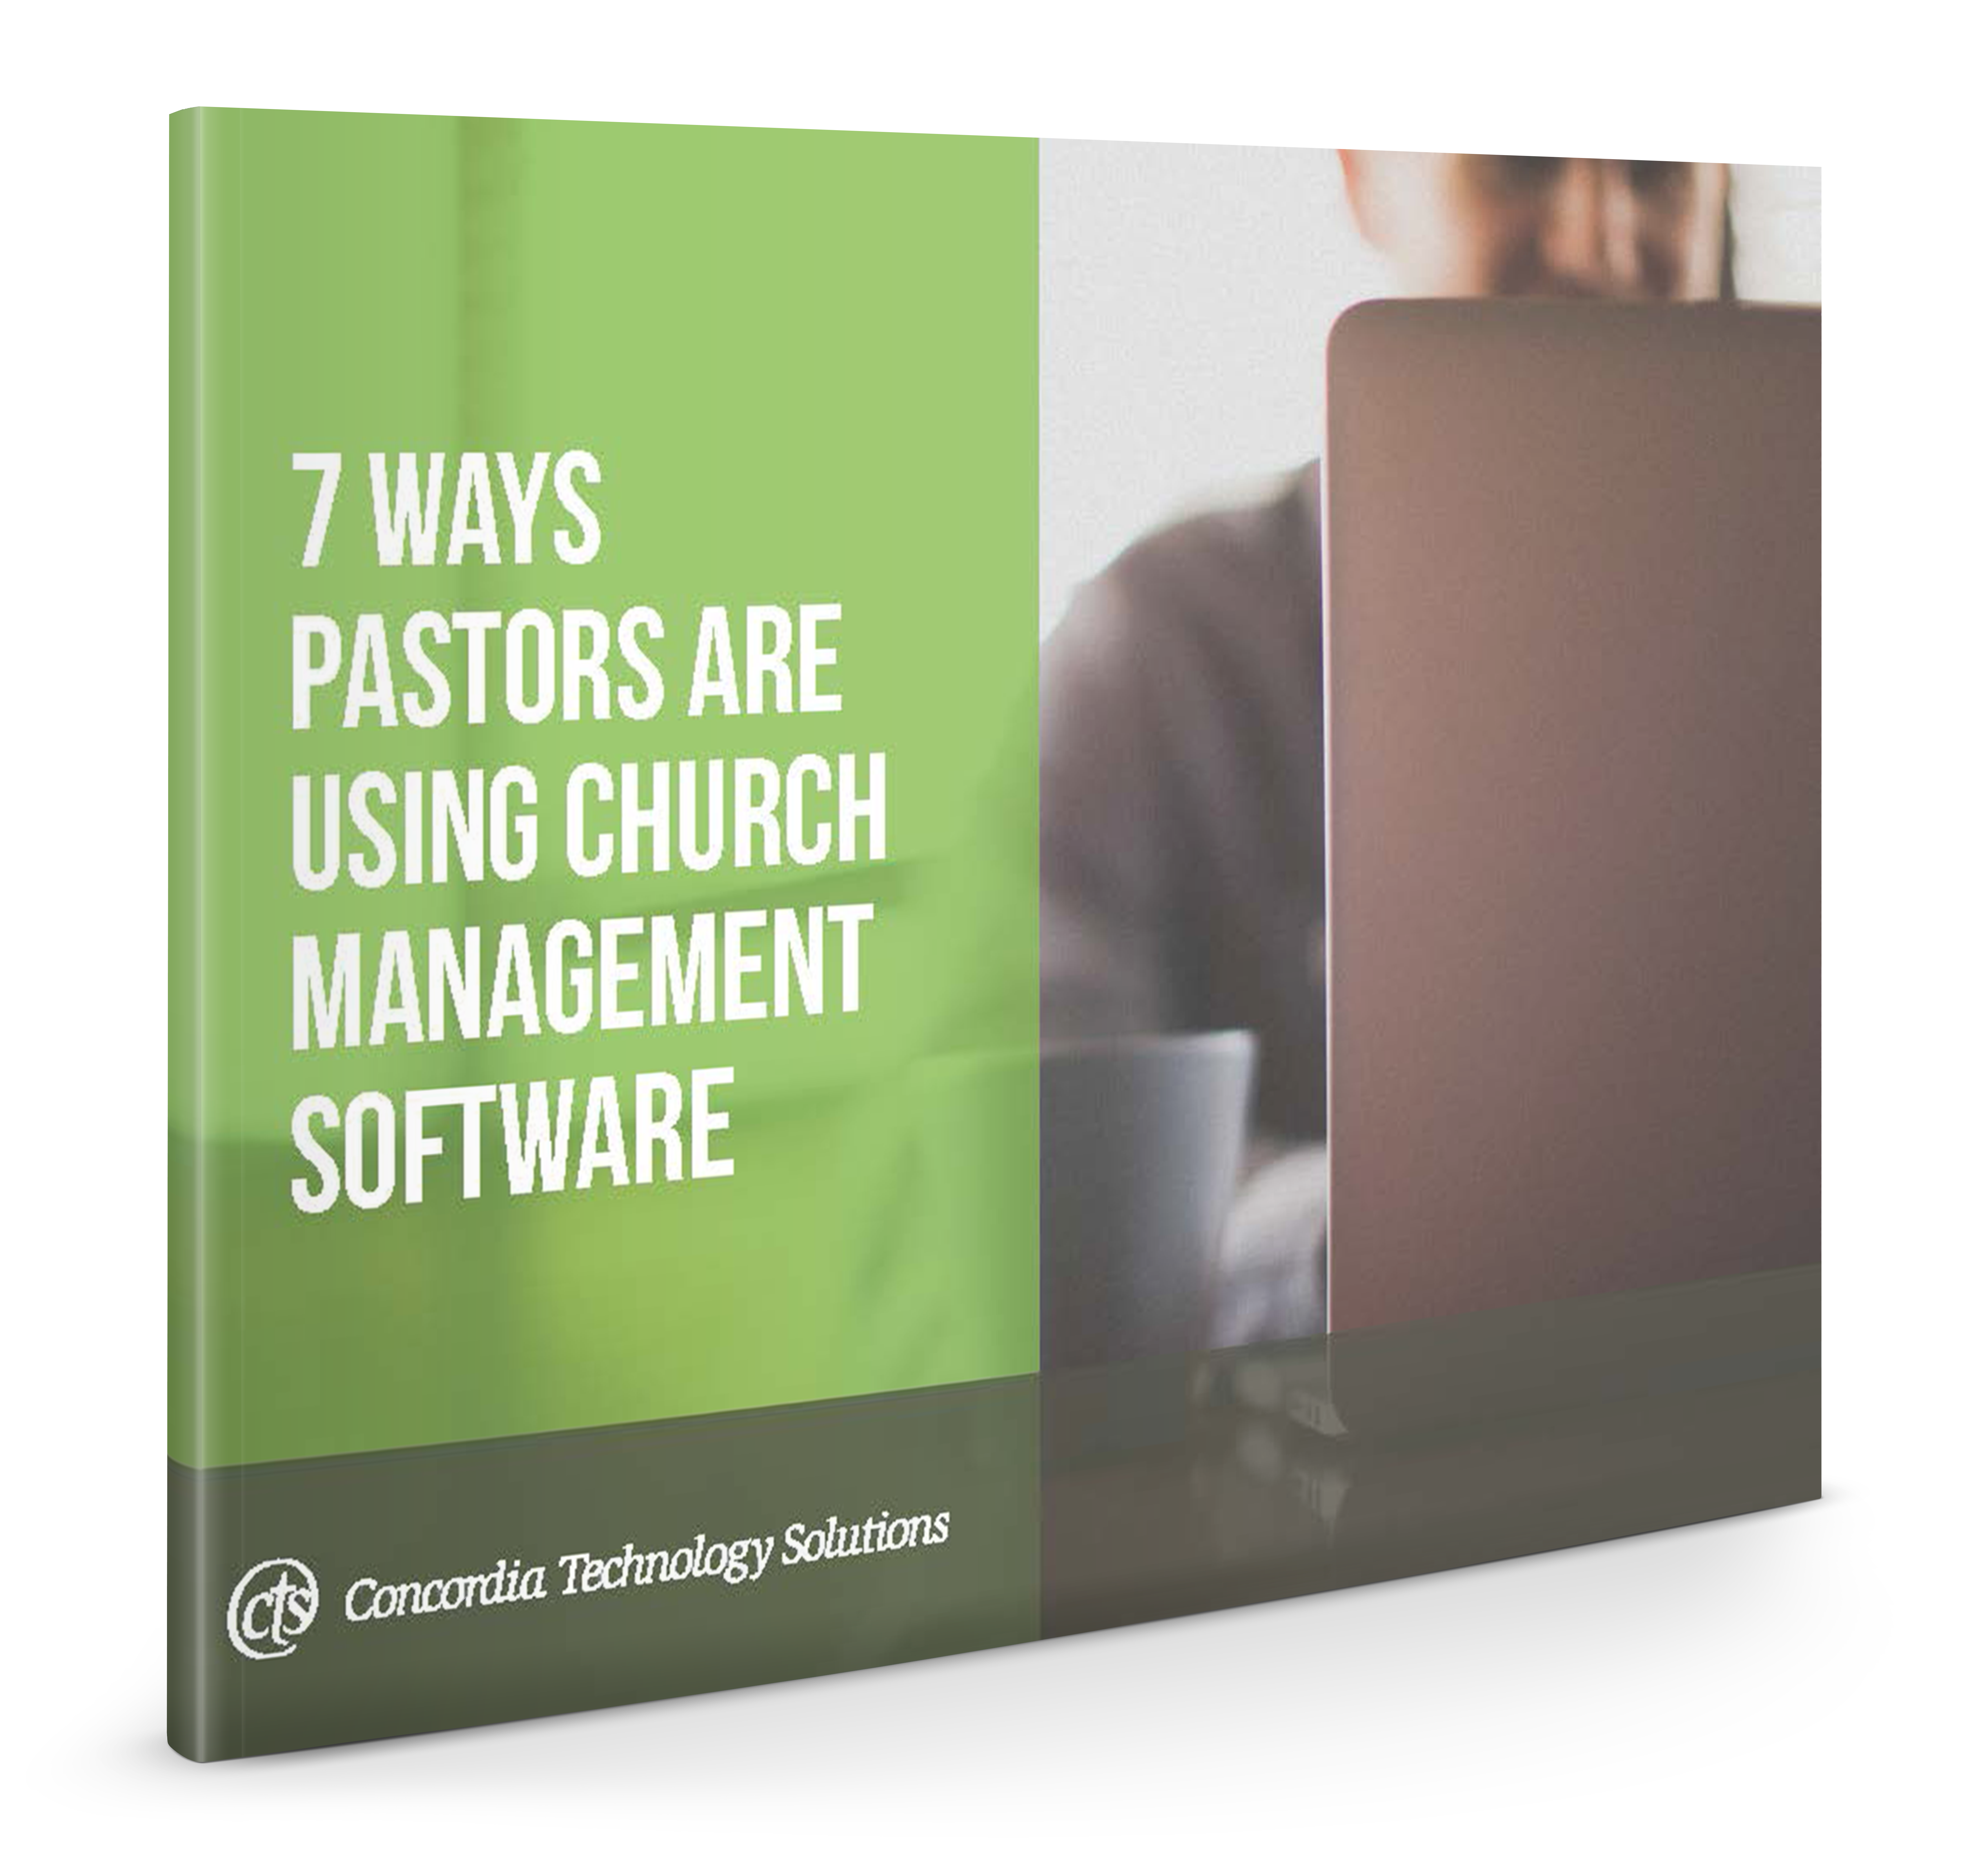 3D_Mockup_-_7_Ways_Pastors_are_Using_Church_Management_Software.png